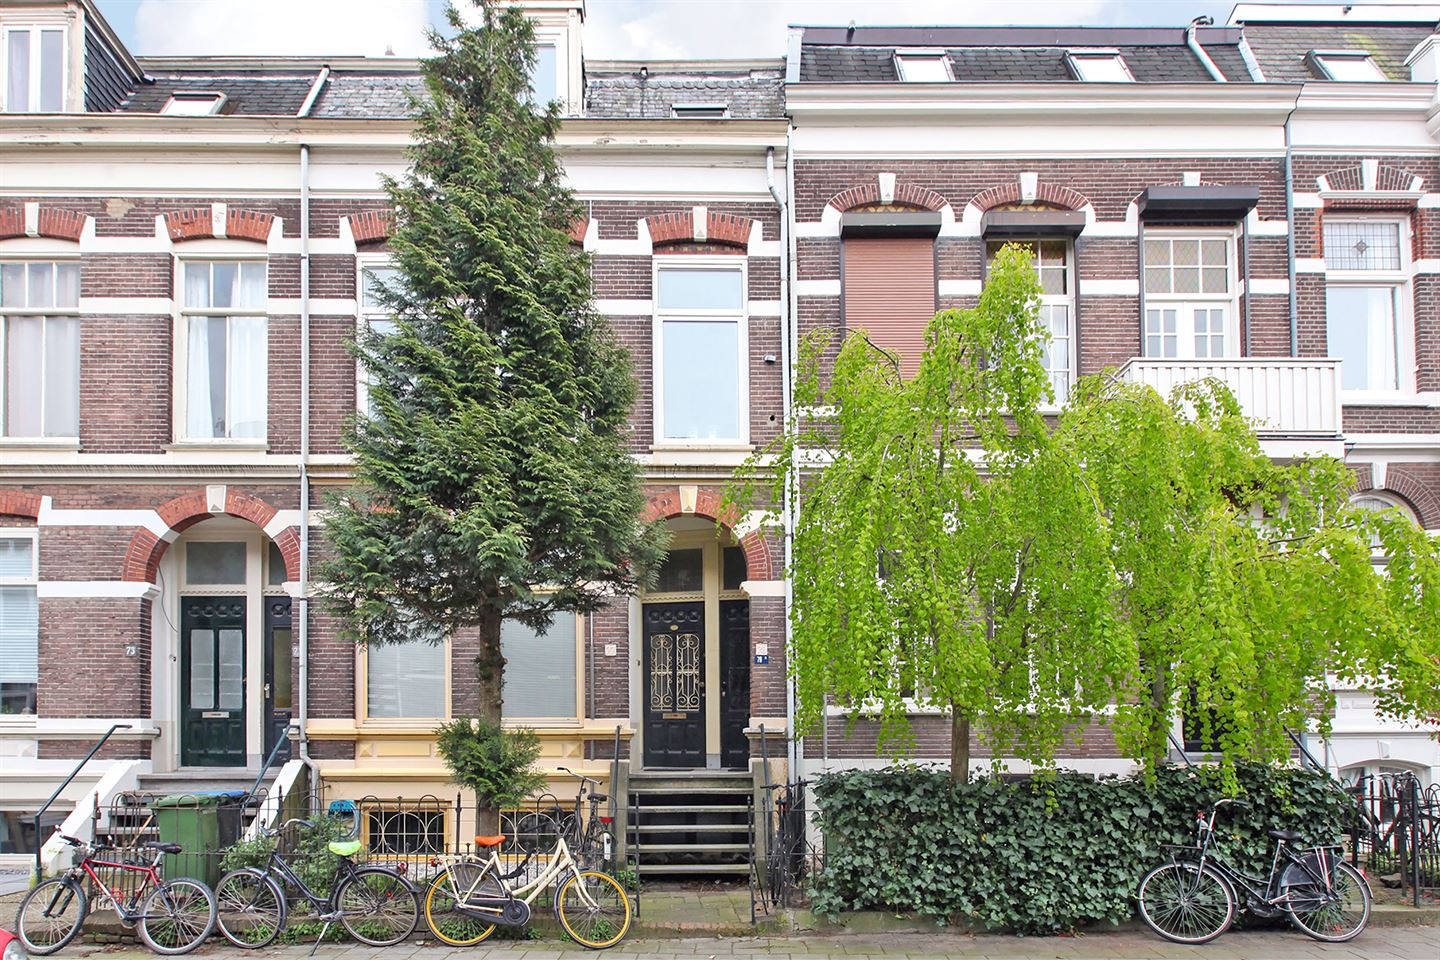 Appartement Funda Appartement Te Koop Jacob Canisstraat 79 6521 Hk Nijmegen Funda